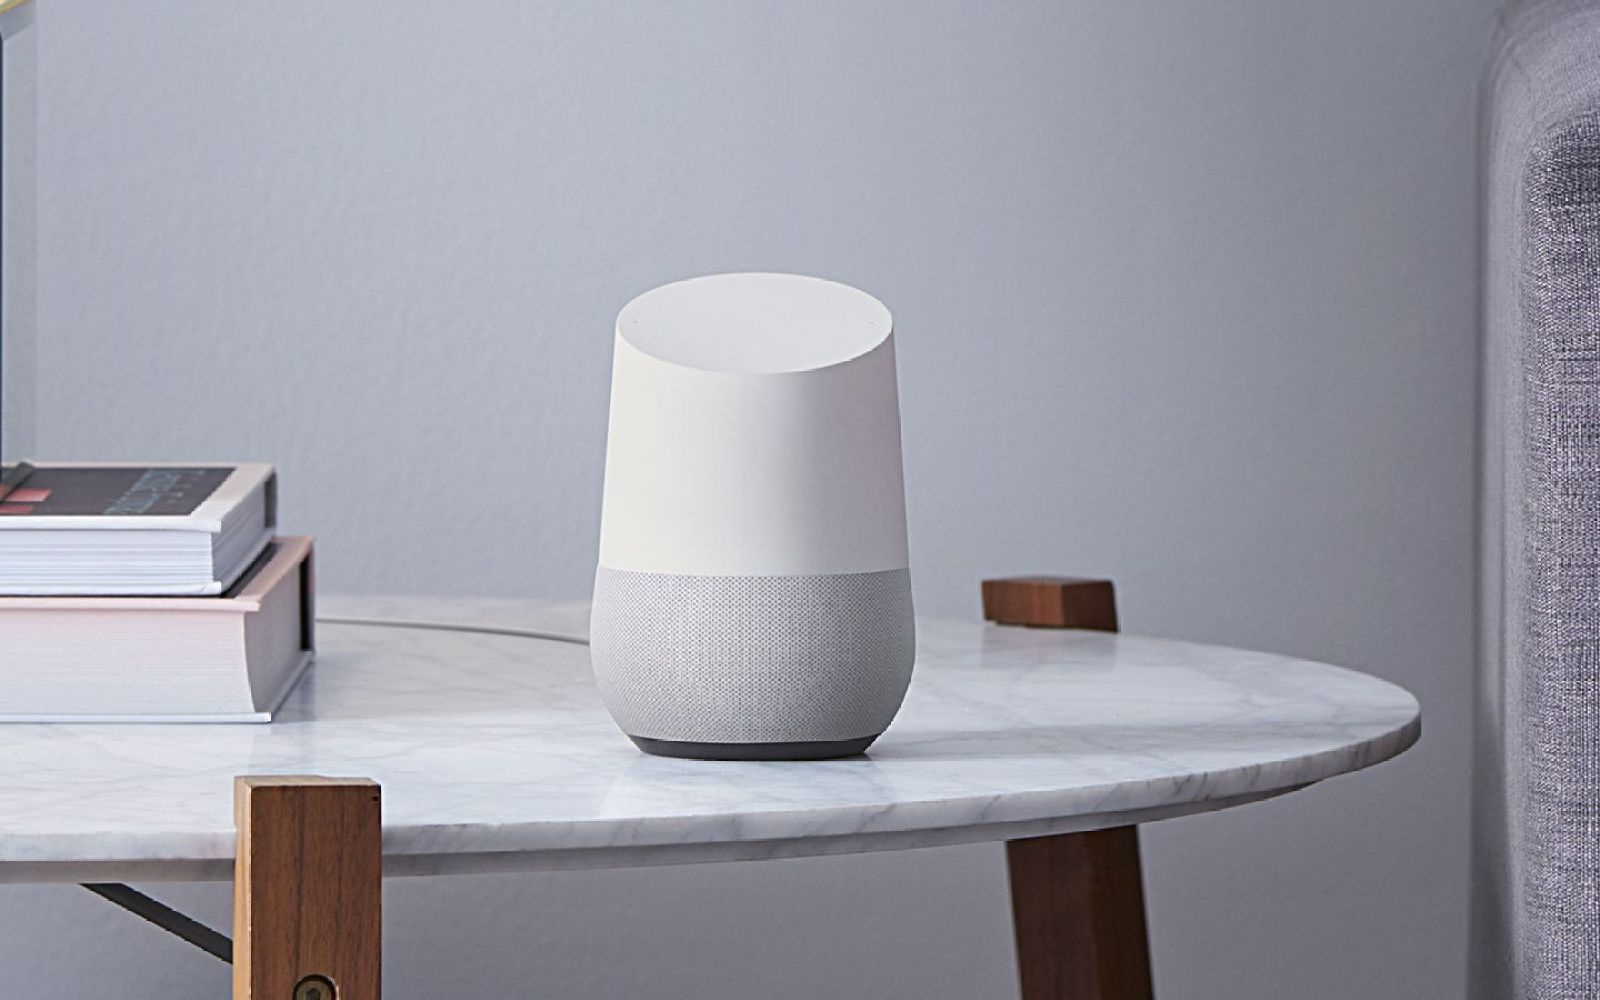 Google Home will be compatible with Samsung's SmartThings platform at launch